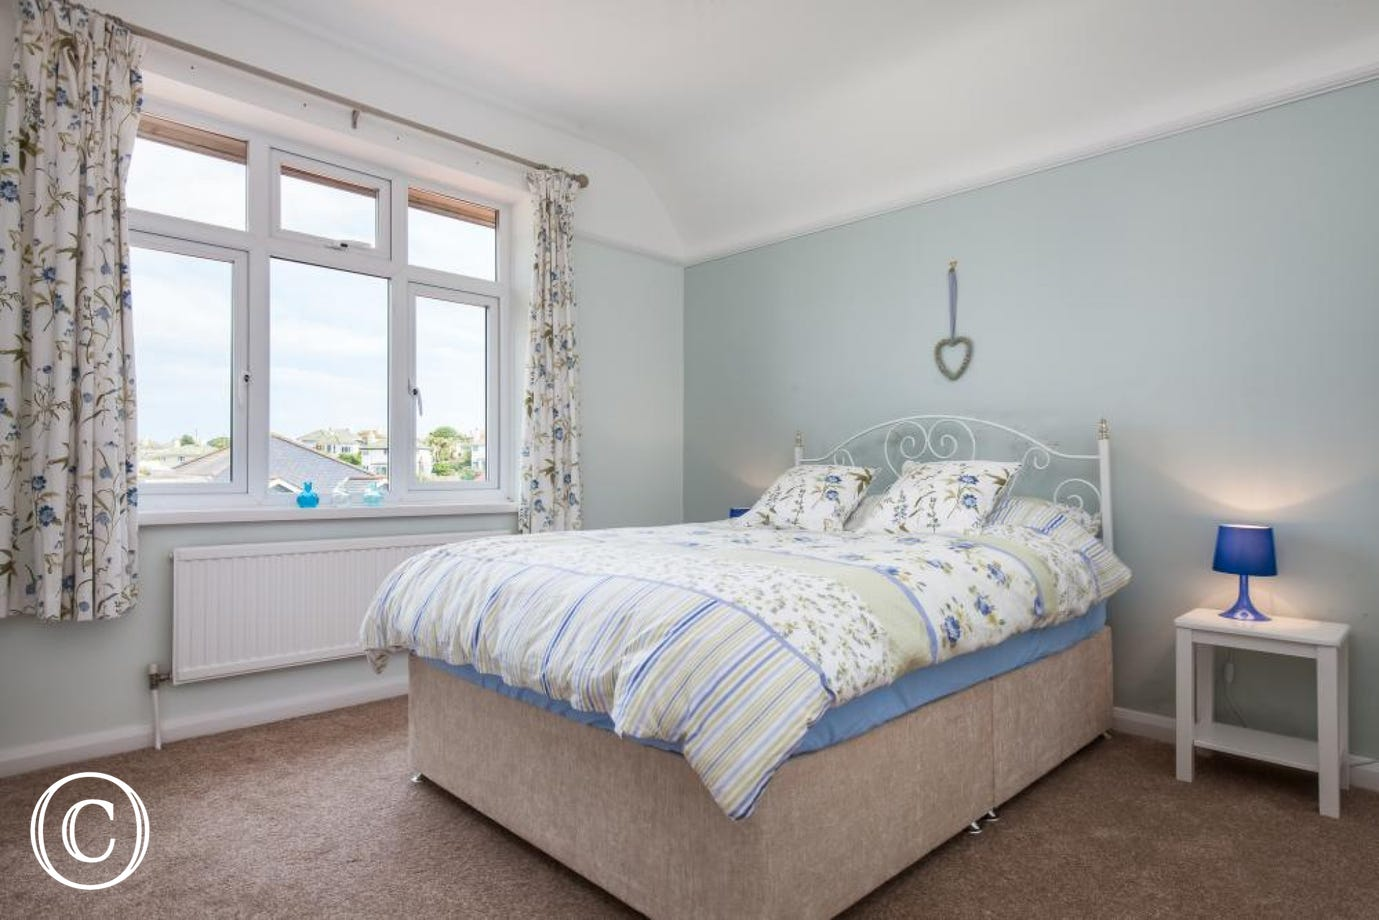 Spacious, Sea View Kingsize Bedroom with Wardrobes, Dressing Table & TV.